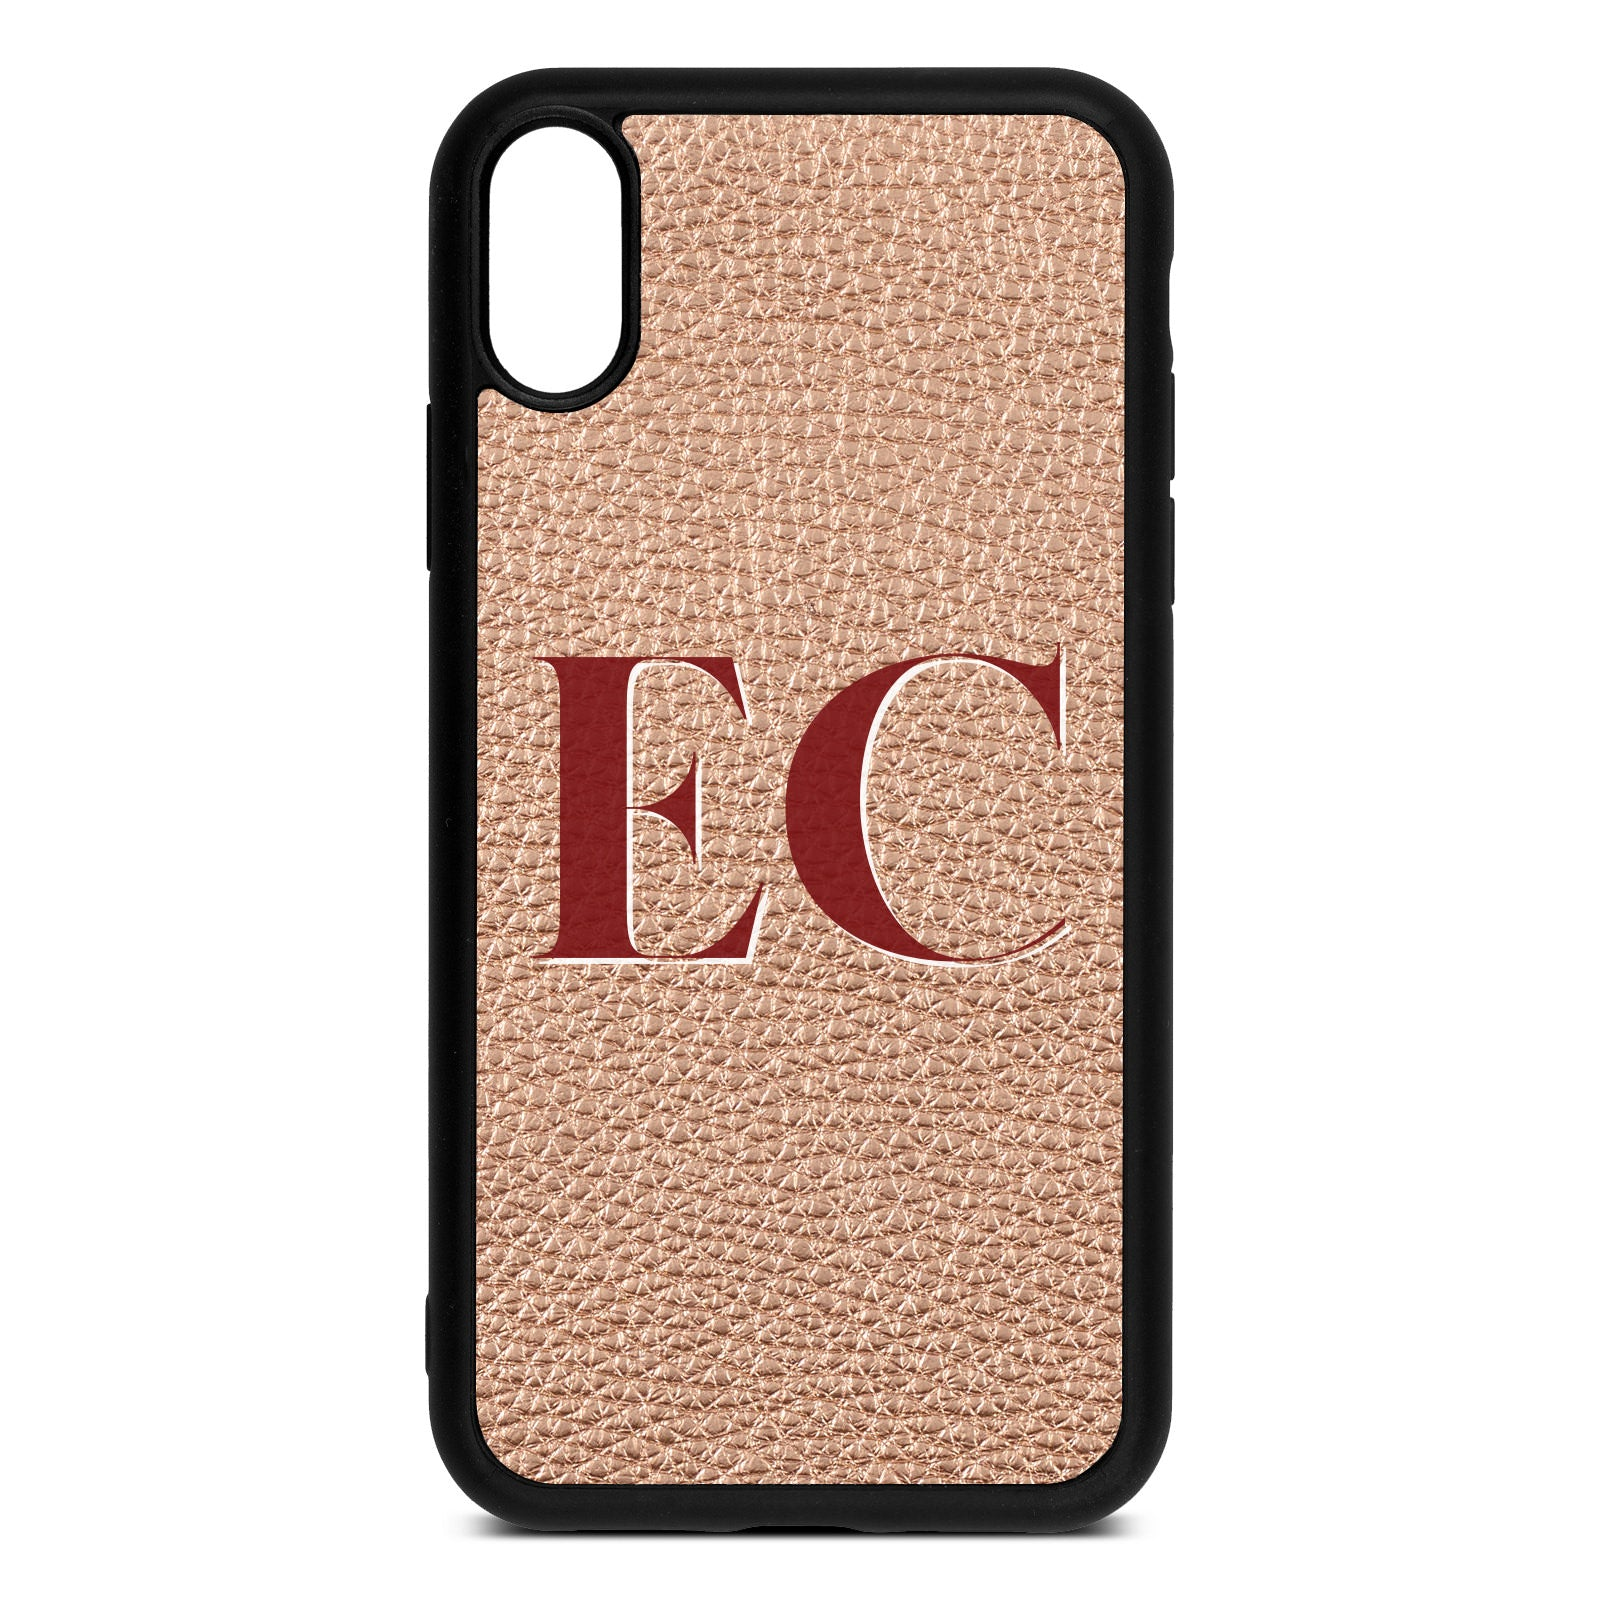 iPhone Xr Rose Gold Pebble Leather Case